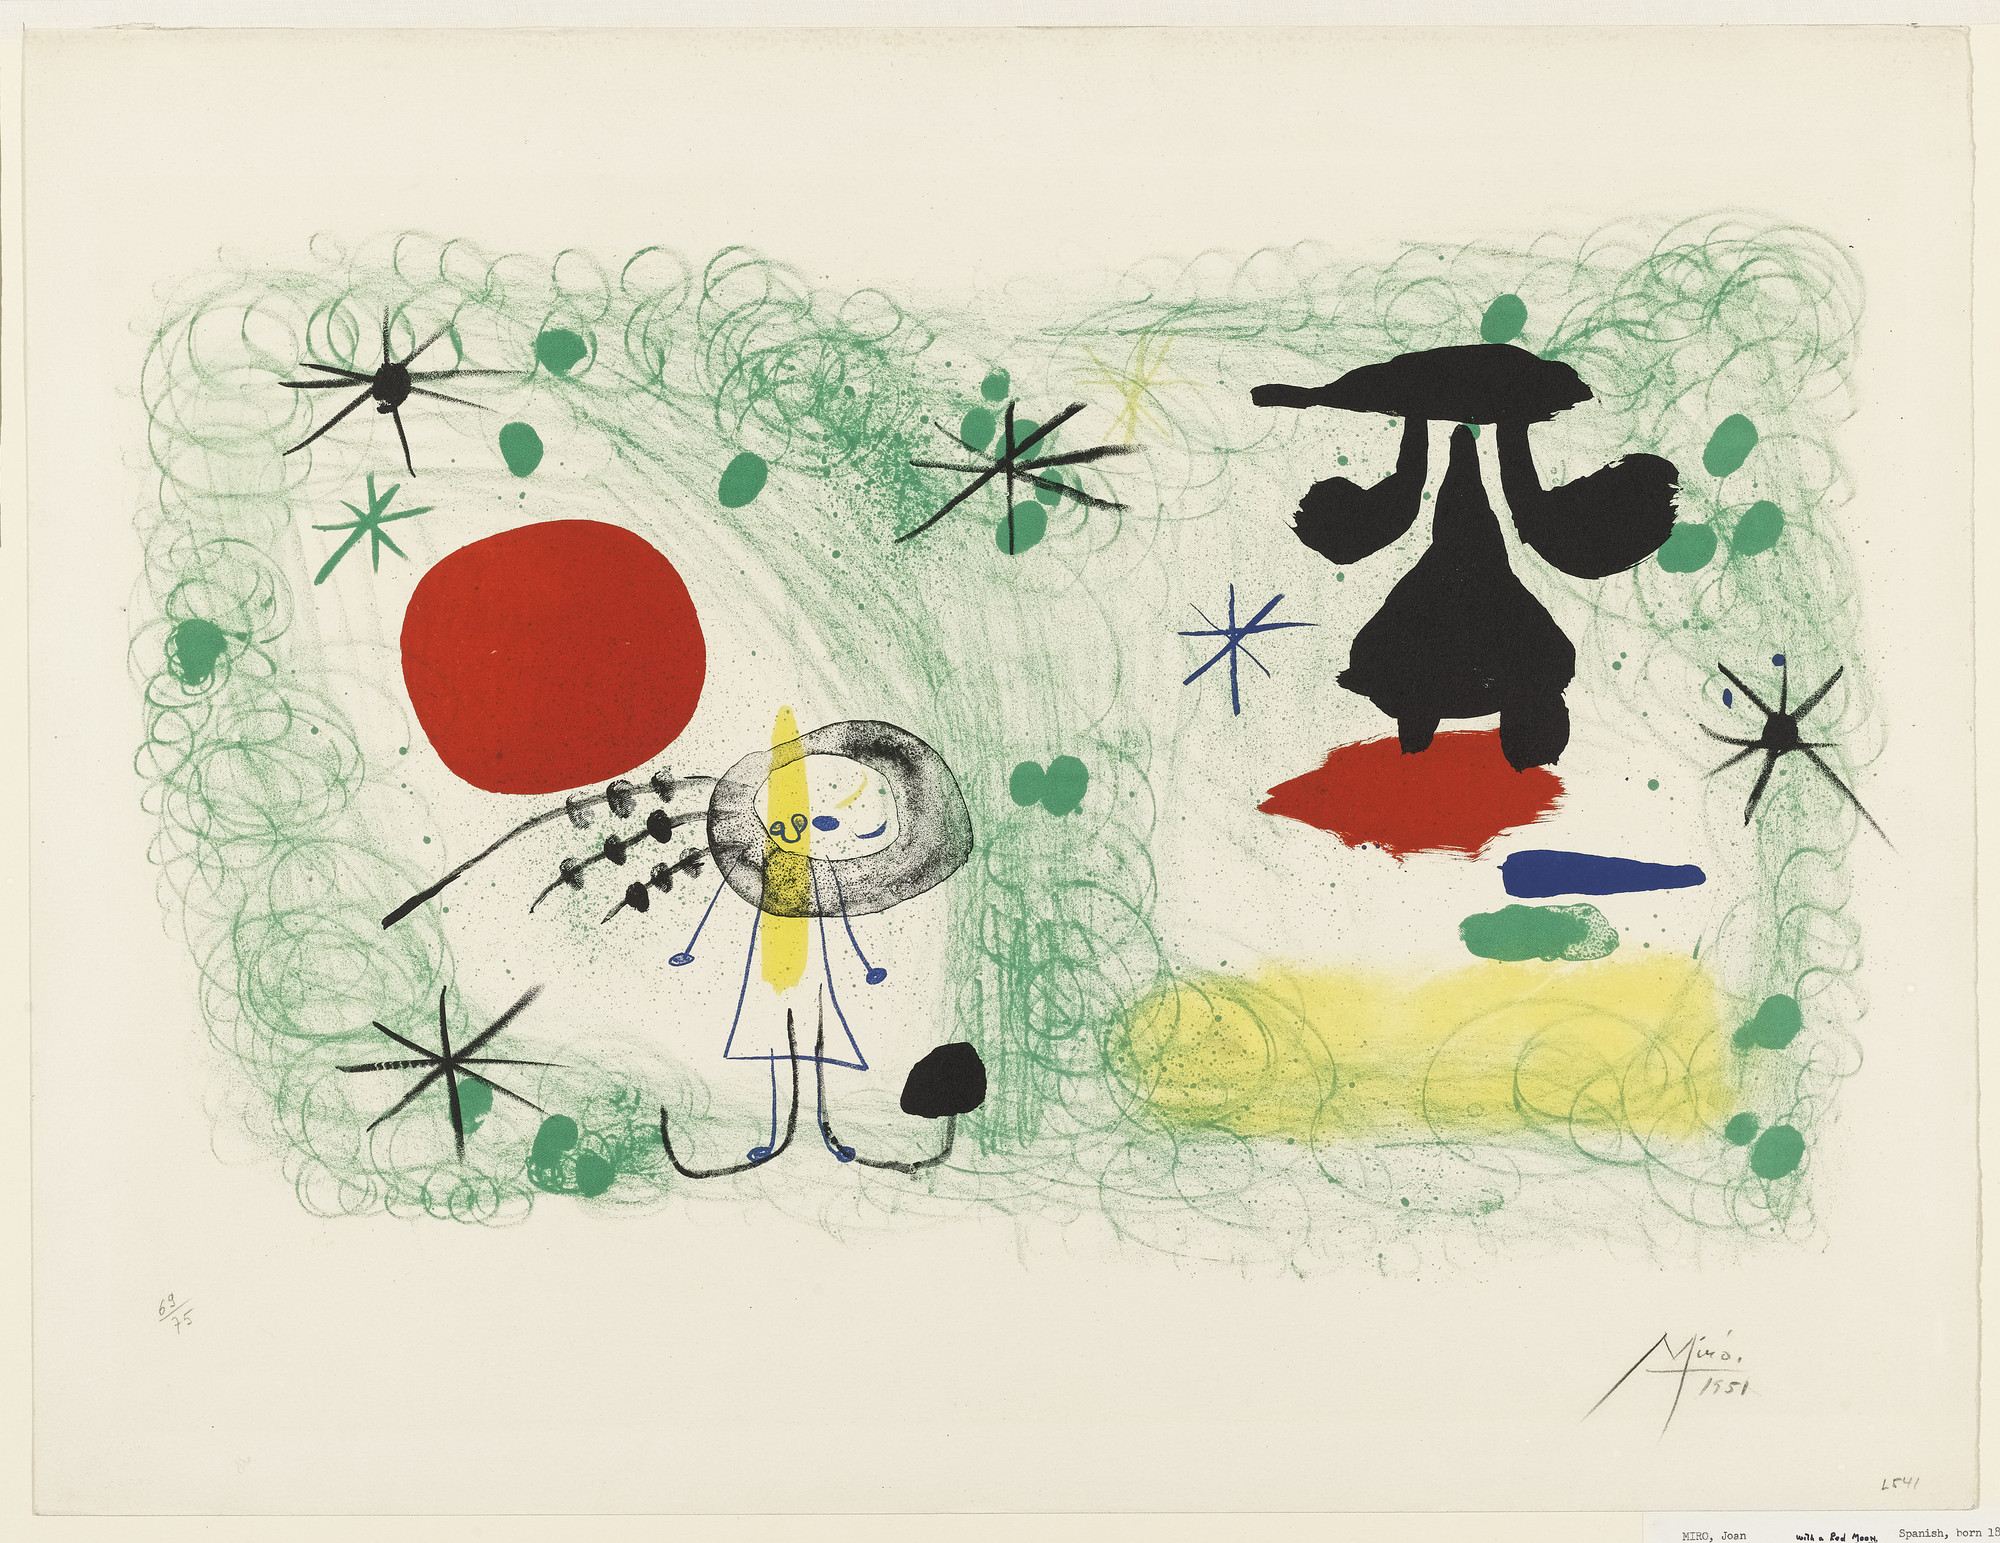 Joan Miró. Person in a Garden, II. 1951